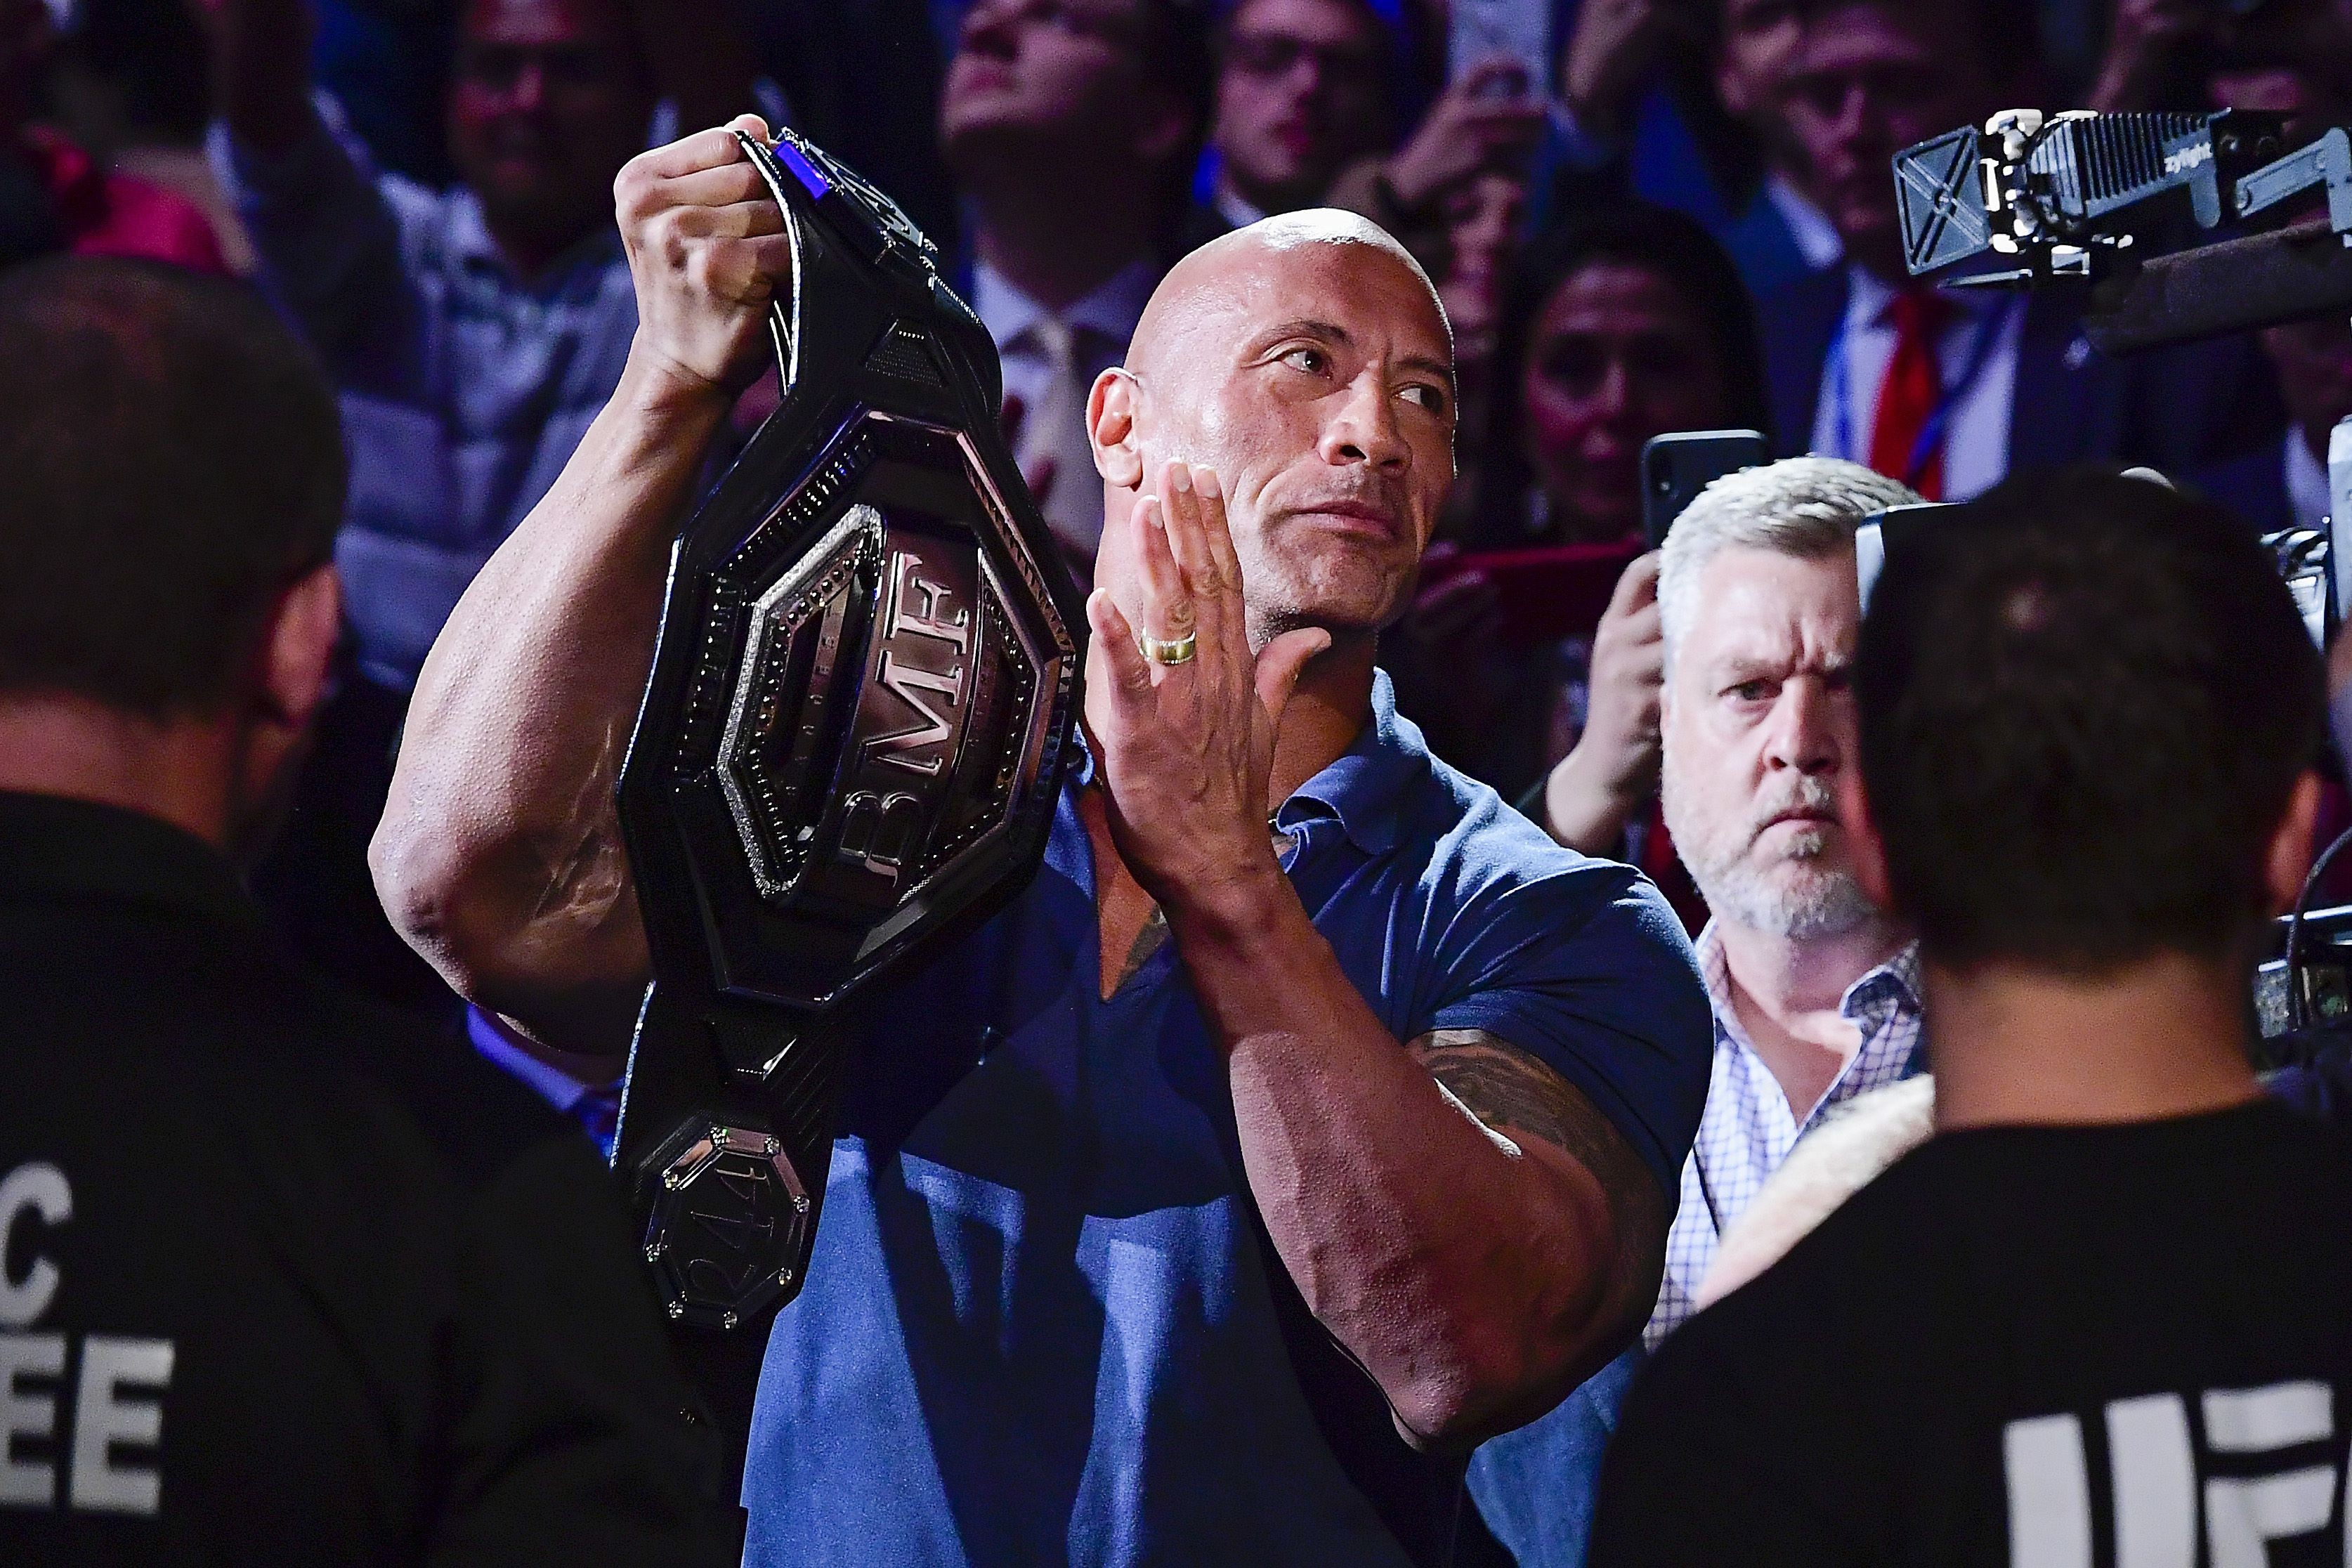 UFC News: Read which UFC fighter the Rock just referred to as a 'dominant beast of a man!' - The Rock